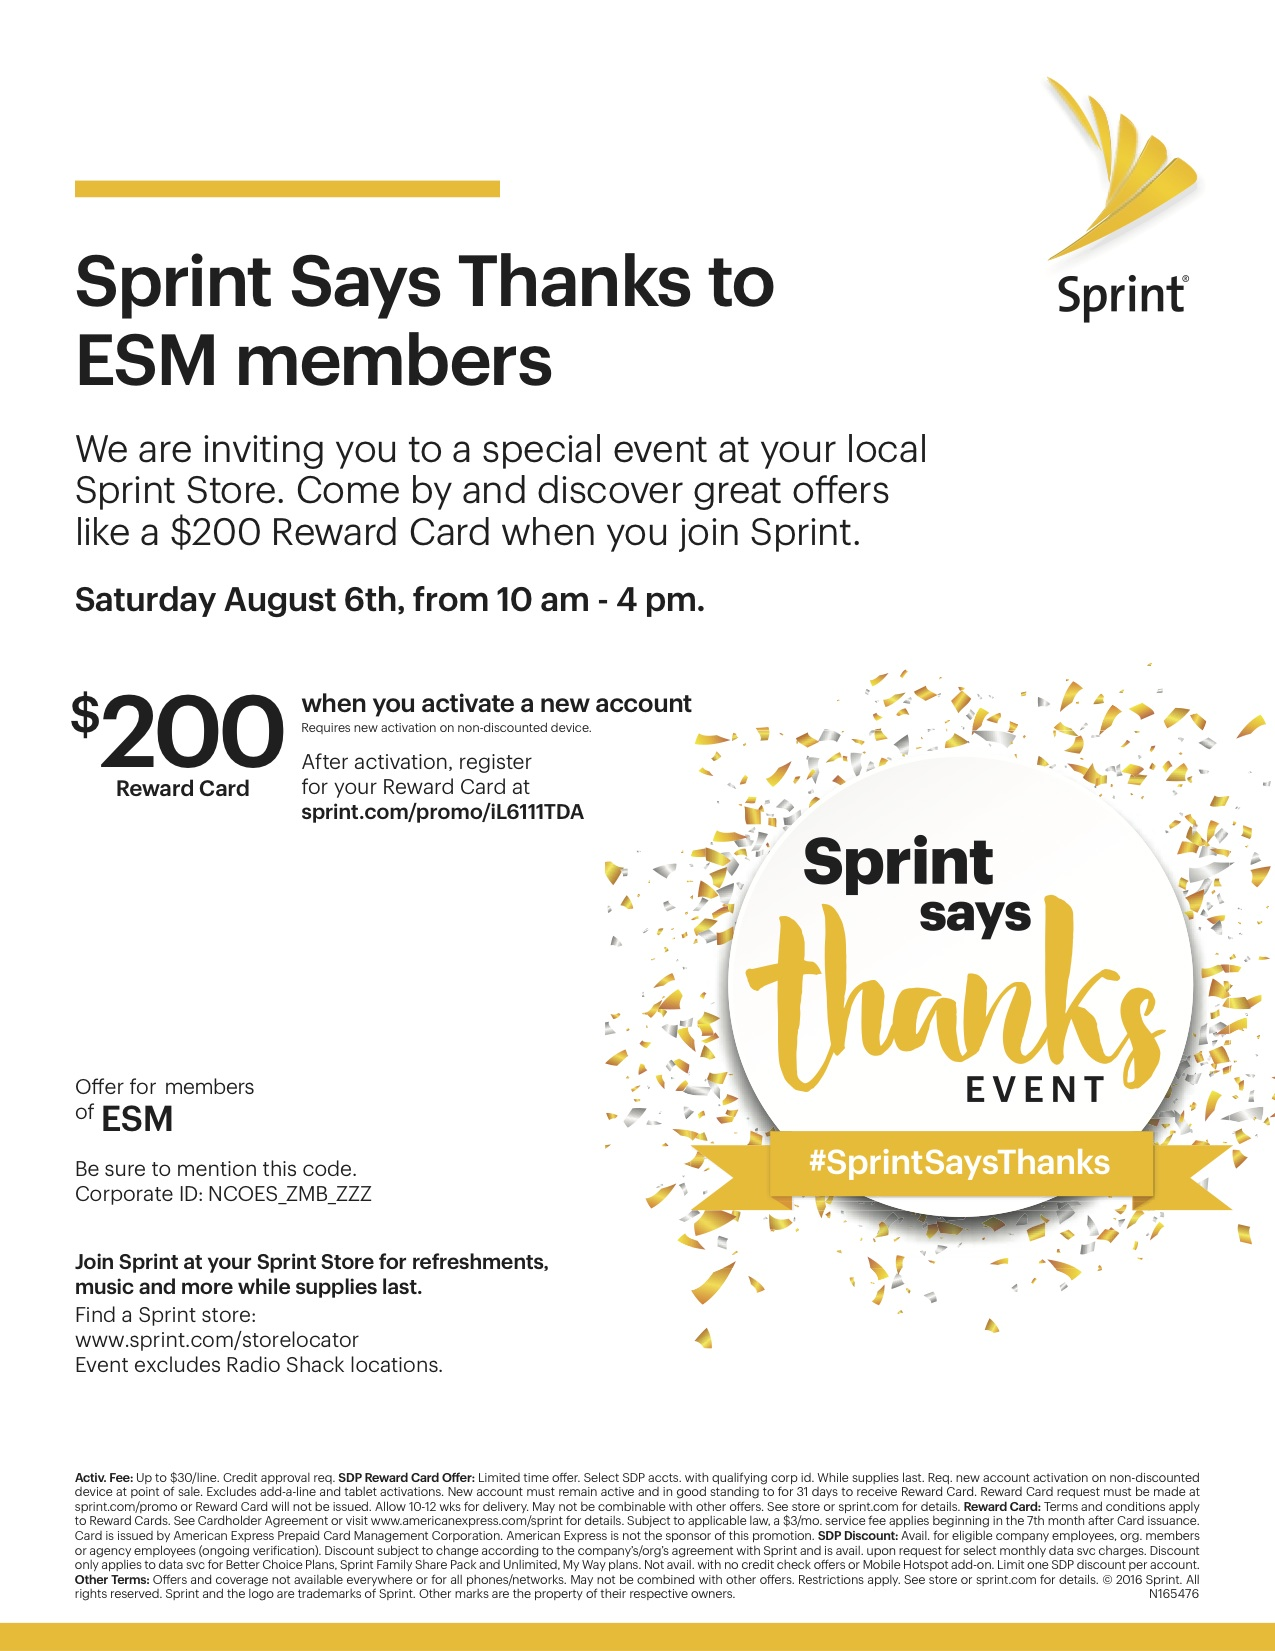 Sprint Says Thanks Event for ESM members_Aug_6_2016